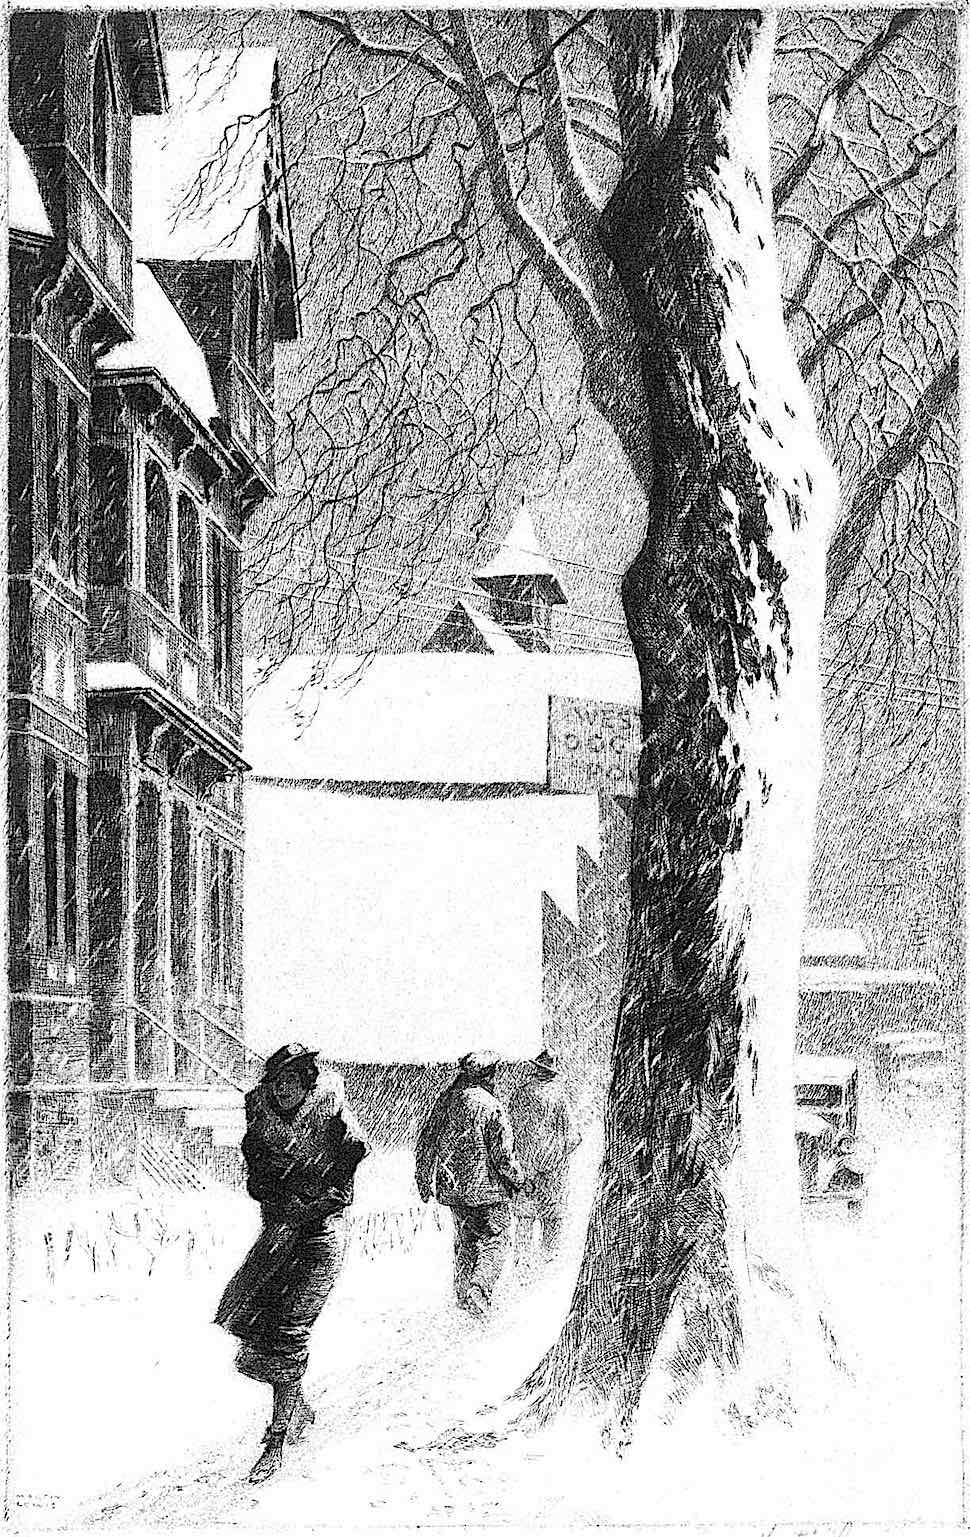 a Martin Lewis print of people walking in an urban snow storm